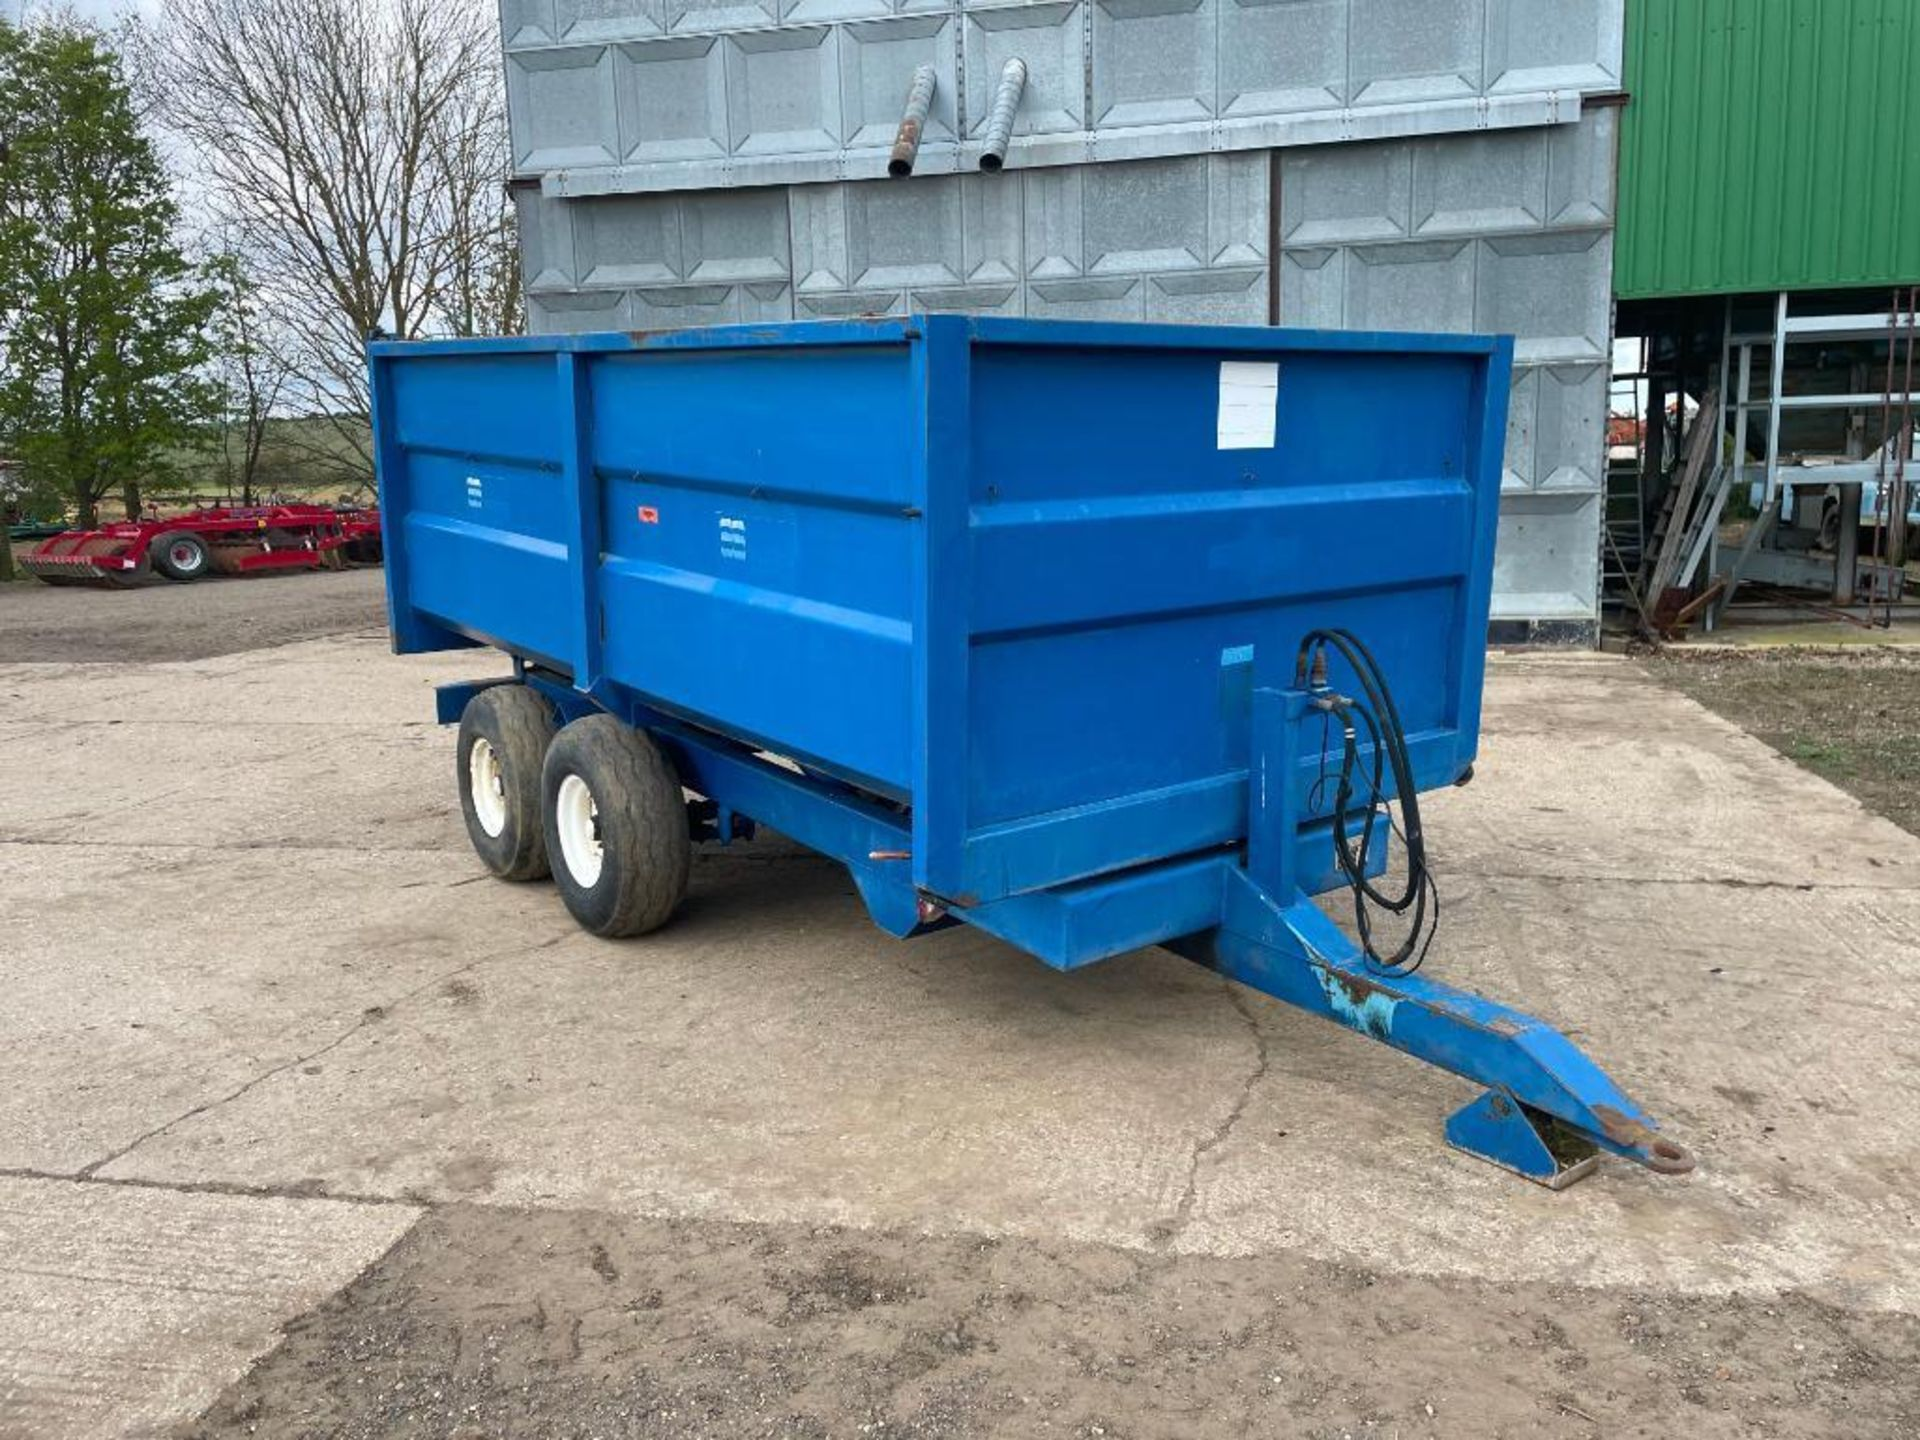 1986 AS Marston 8t twin axle grain trailer, manual tailgate and grain chute on 11.5/80-15.3 wheels a - Image 12 of 15